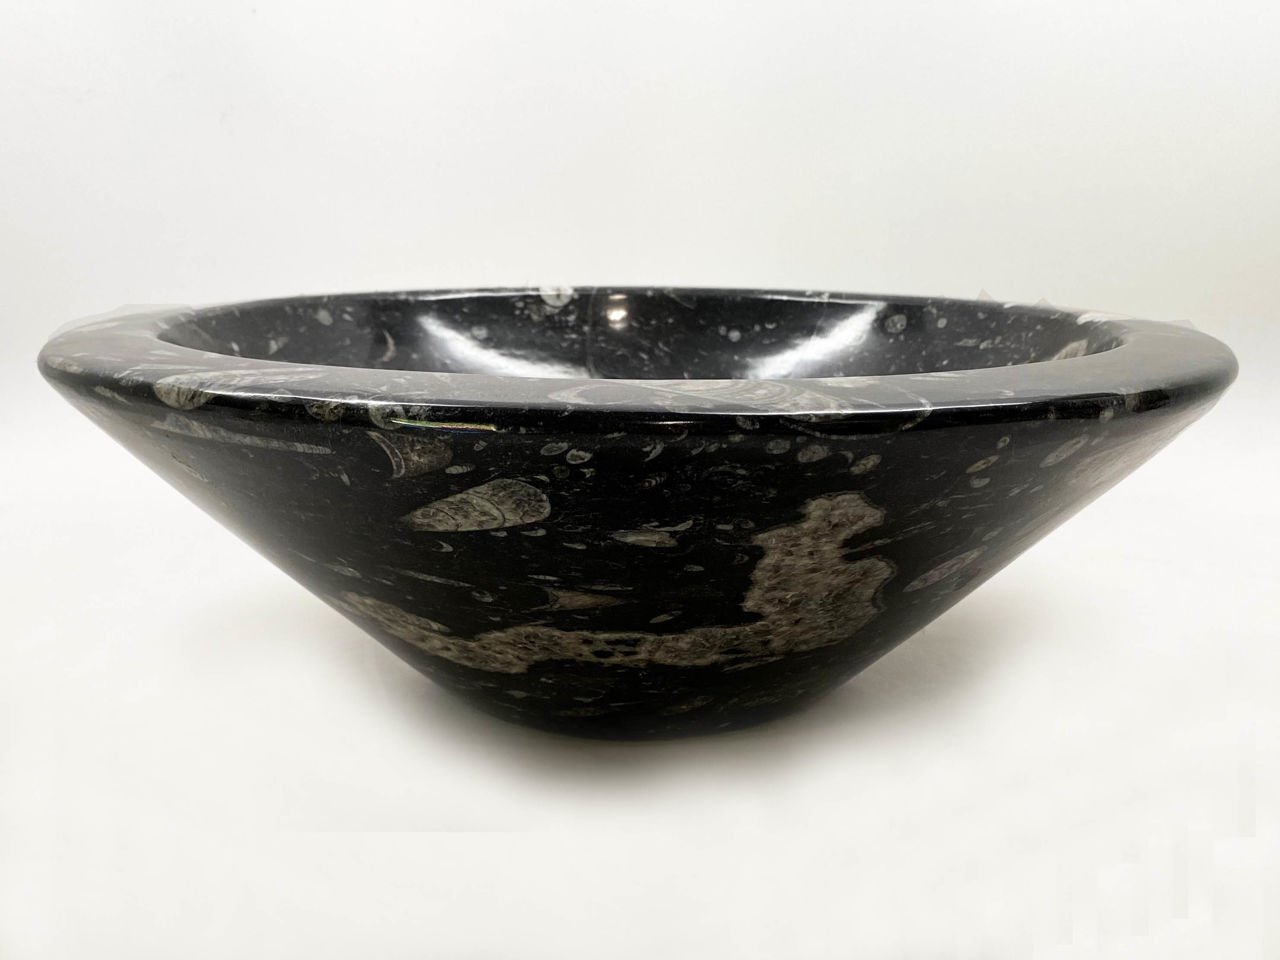 Picture of Genese Fossil Vessel in Noir (156)